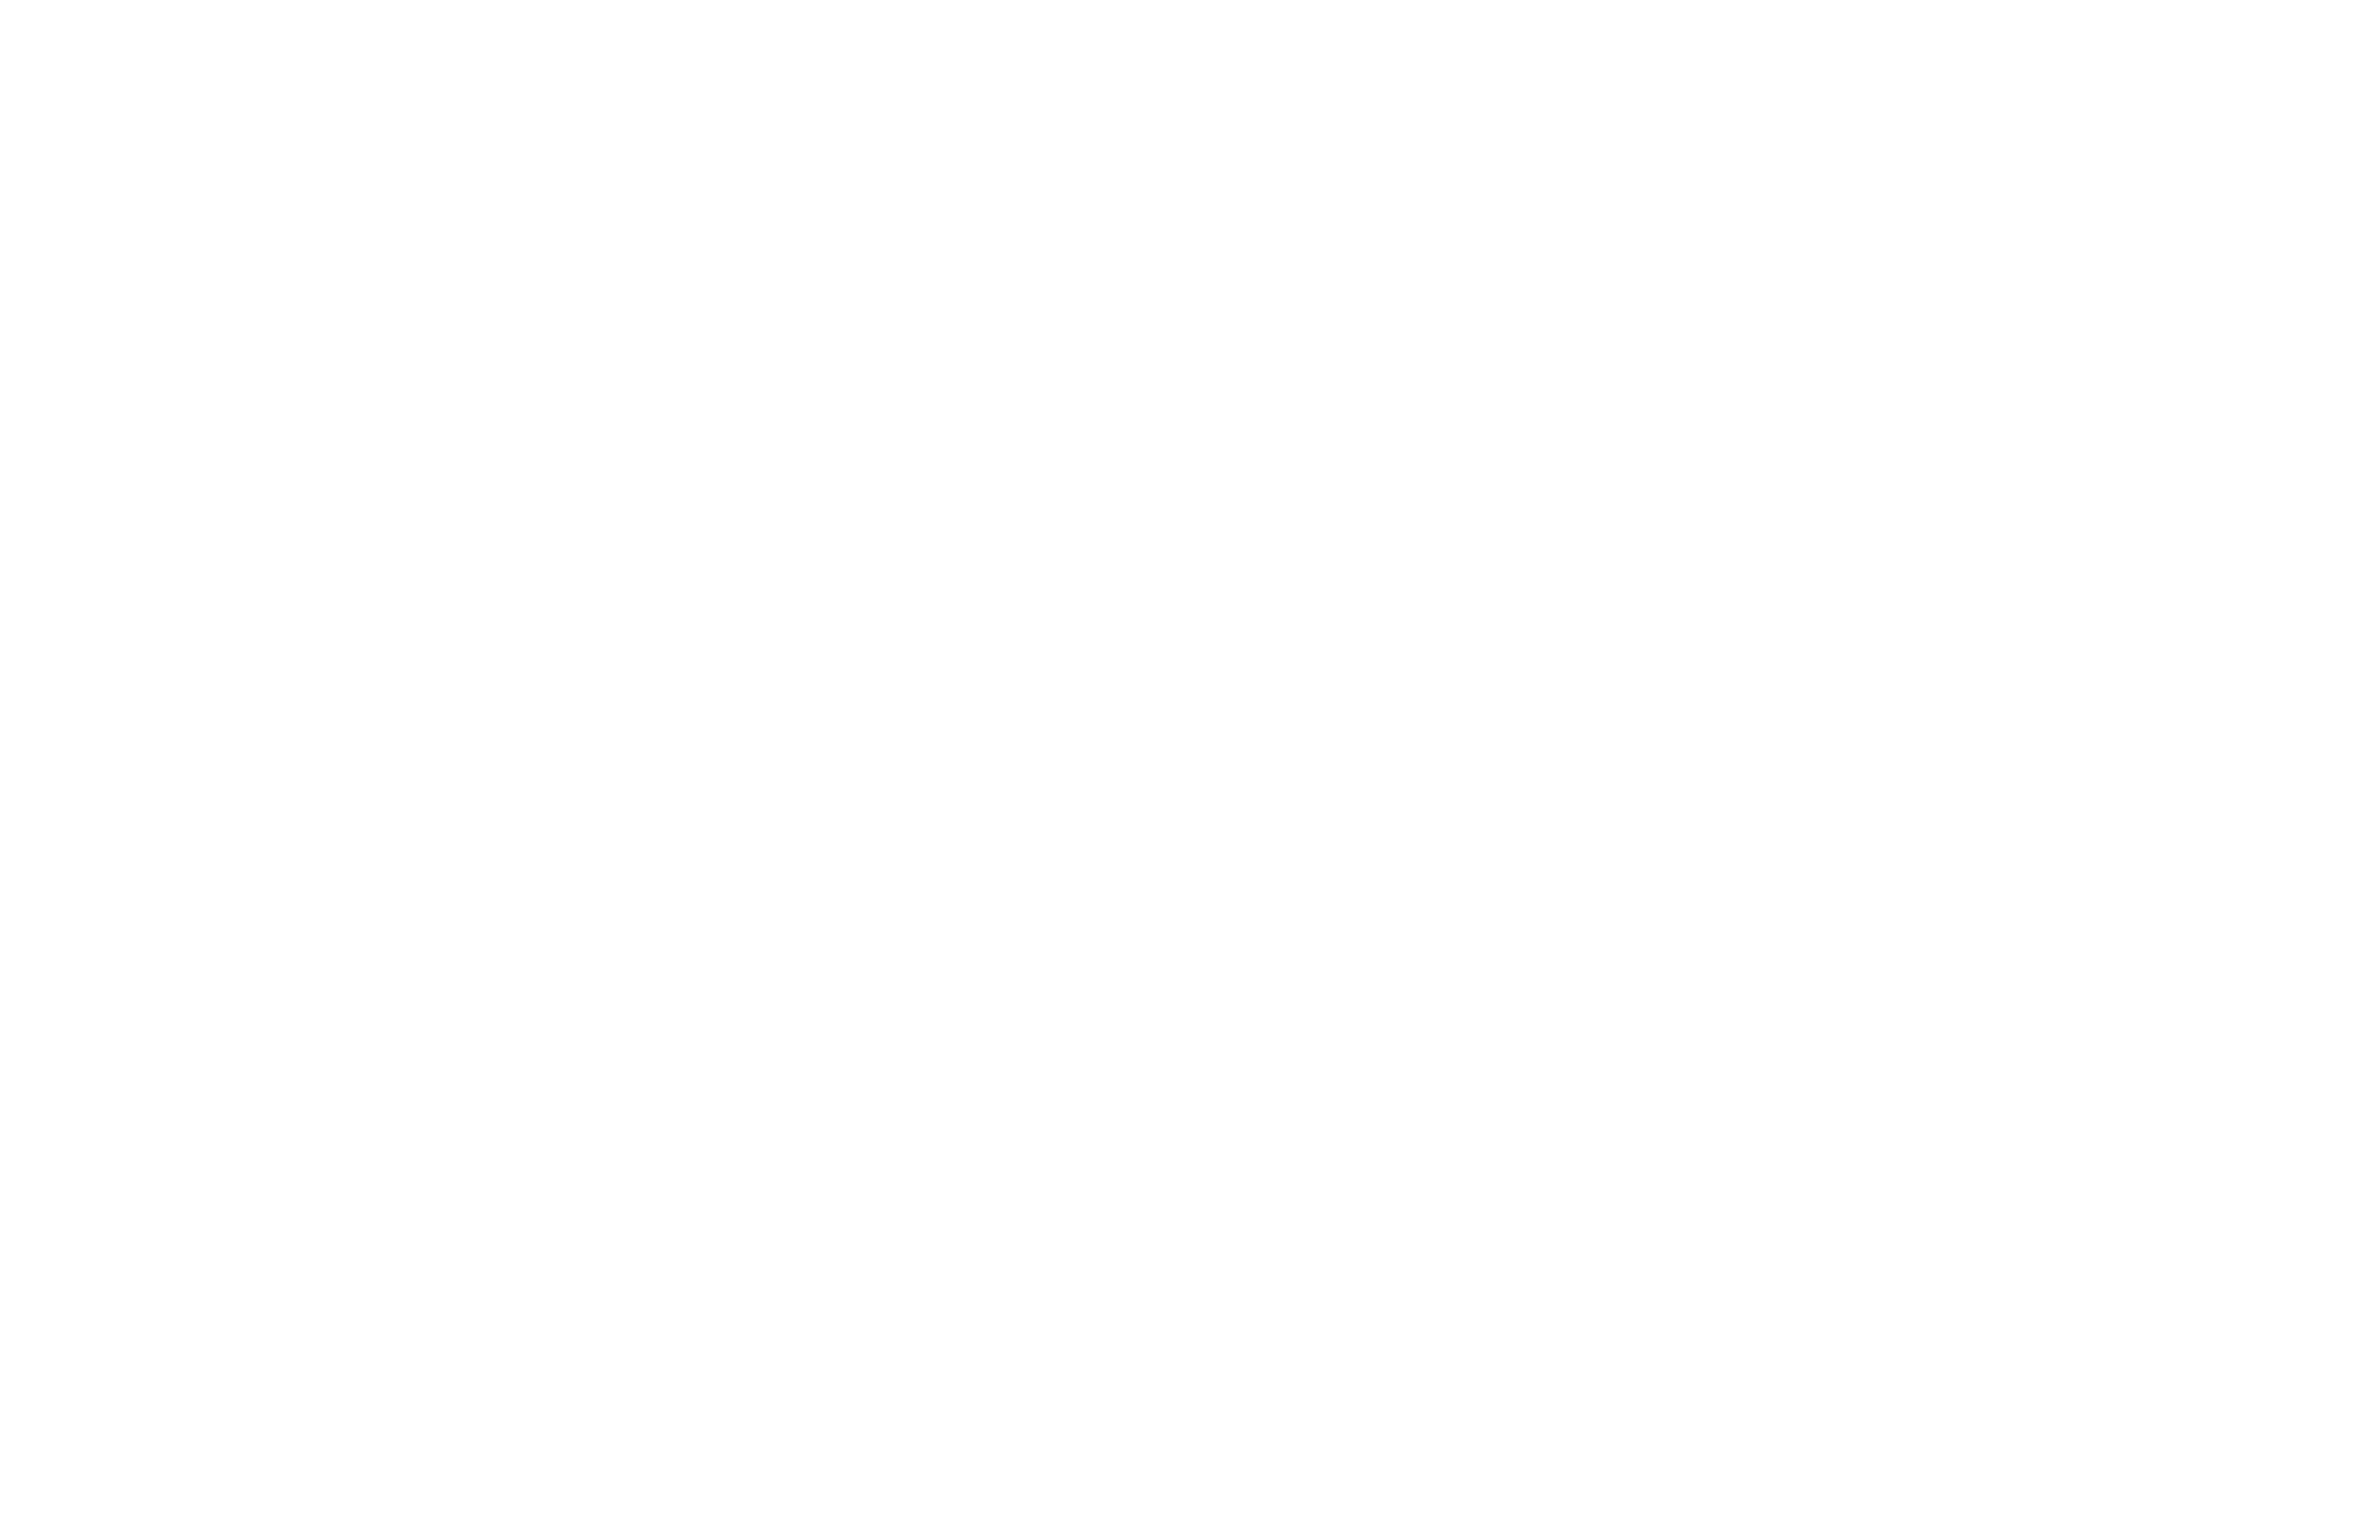 OVERVIEW.png